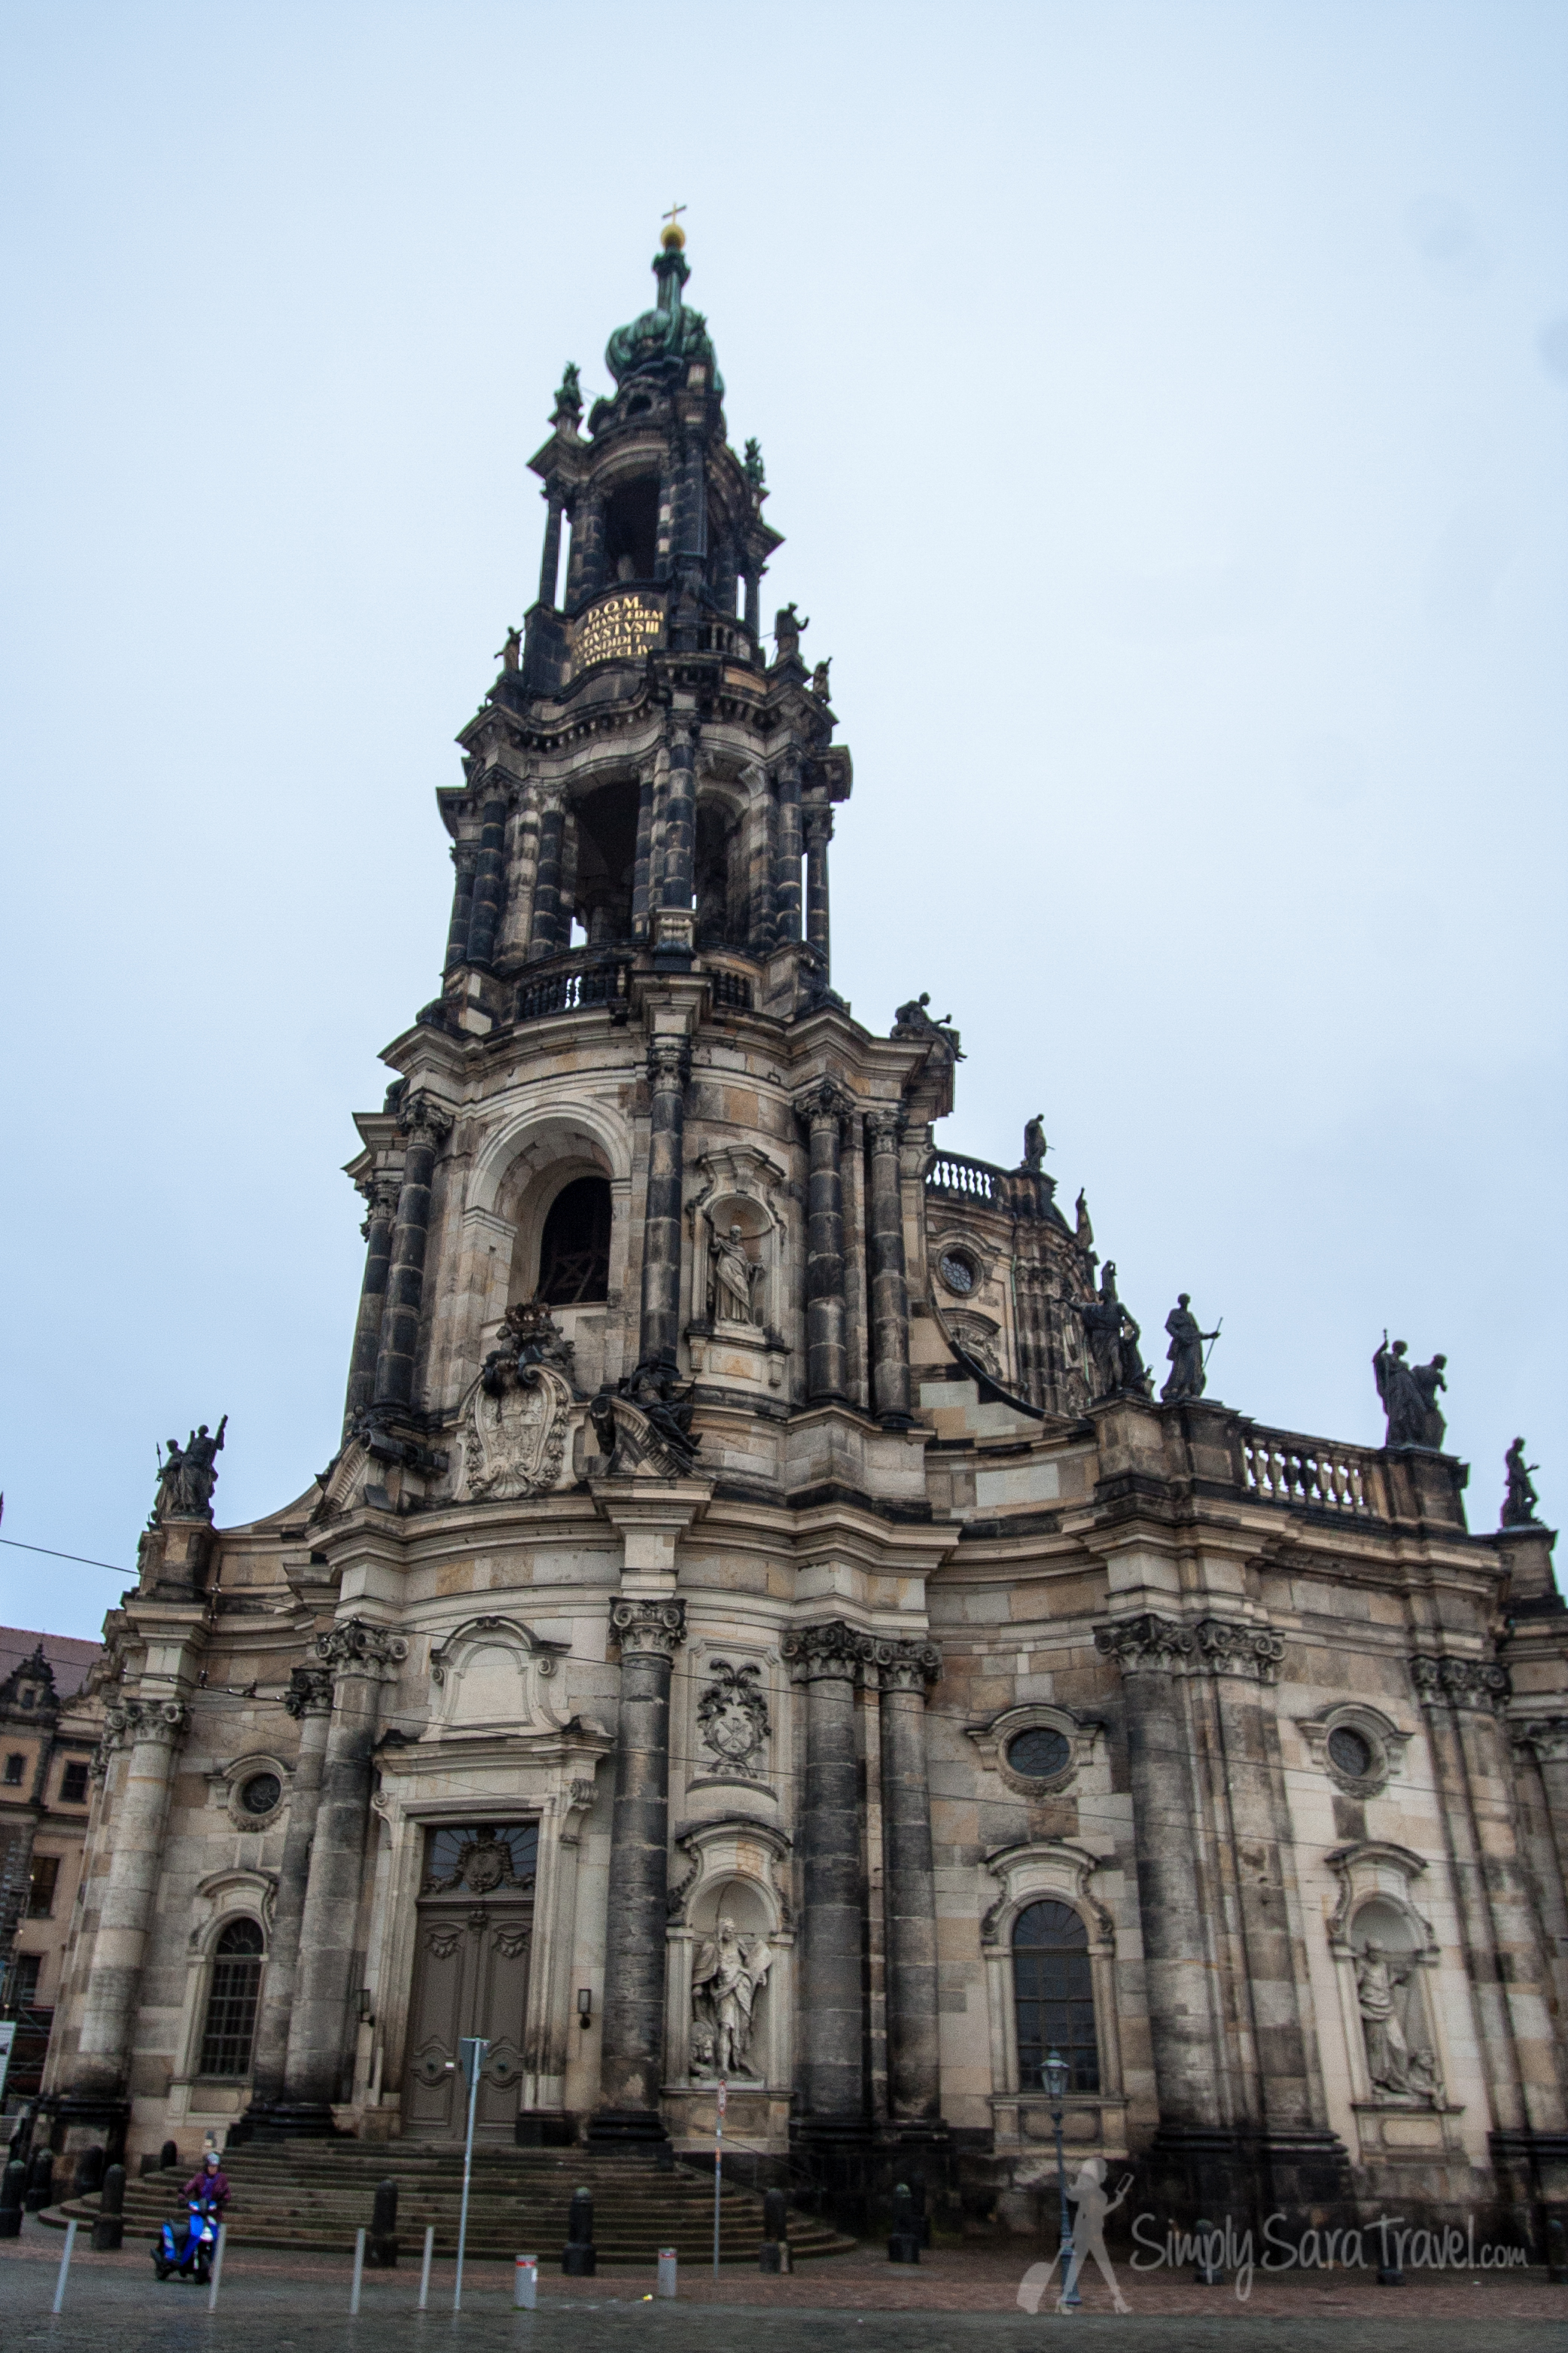 The Christmas markets attracted us to Dresden, Germany and had it not been for that, we probably wouldn't have taken the time to add thislovely city to our travel itinerary! (Pictured above: the Dresden Cathedral, known as  Katholische Hofkirche)